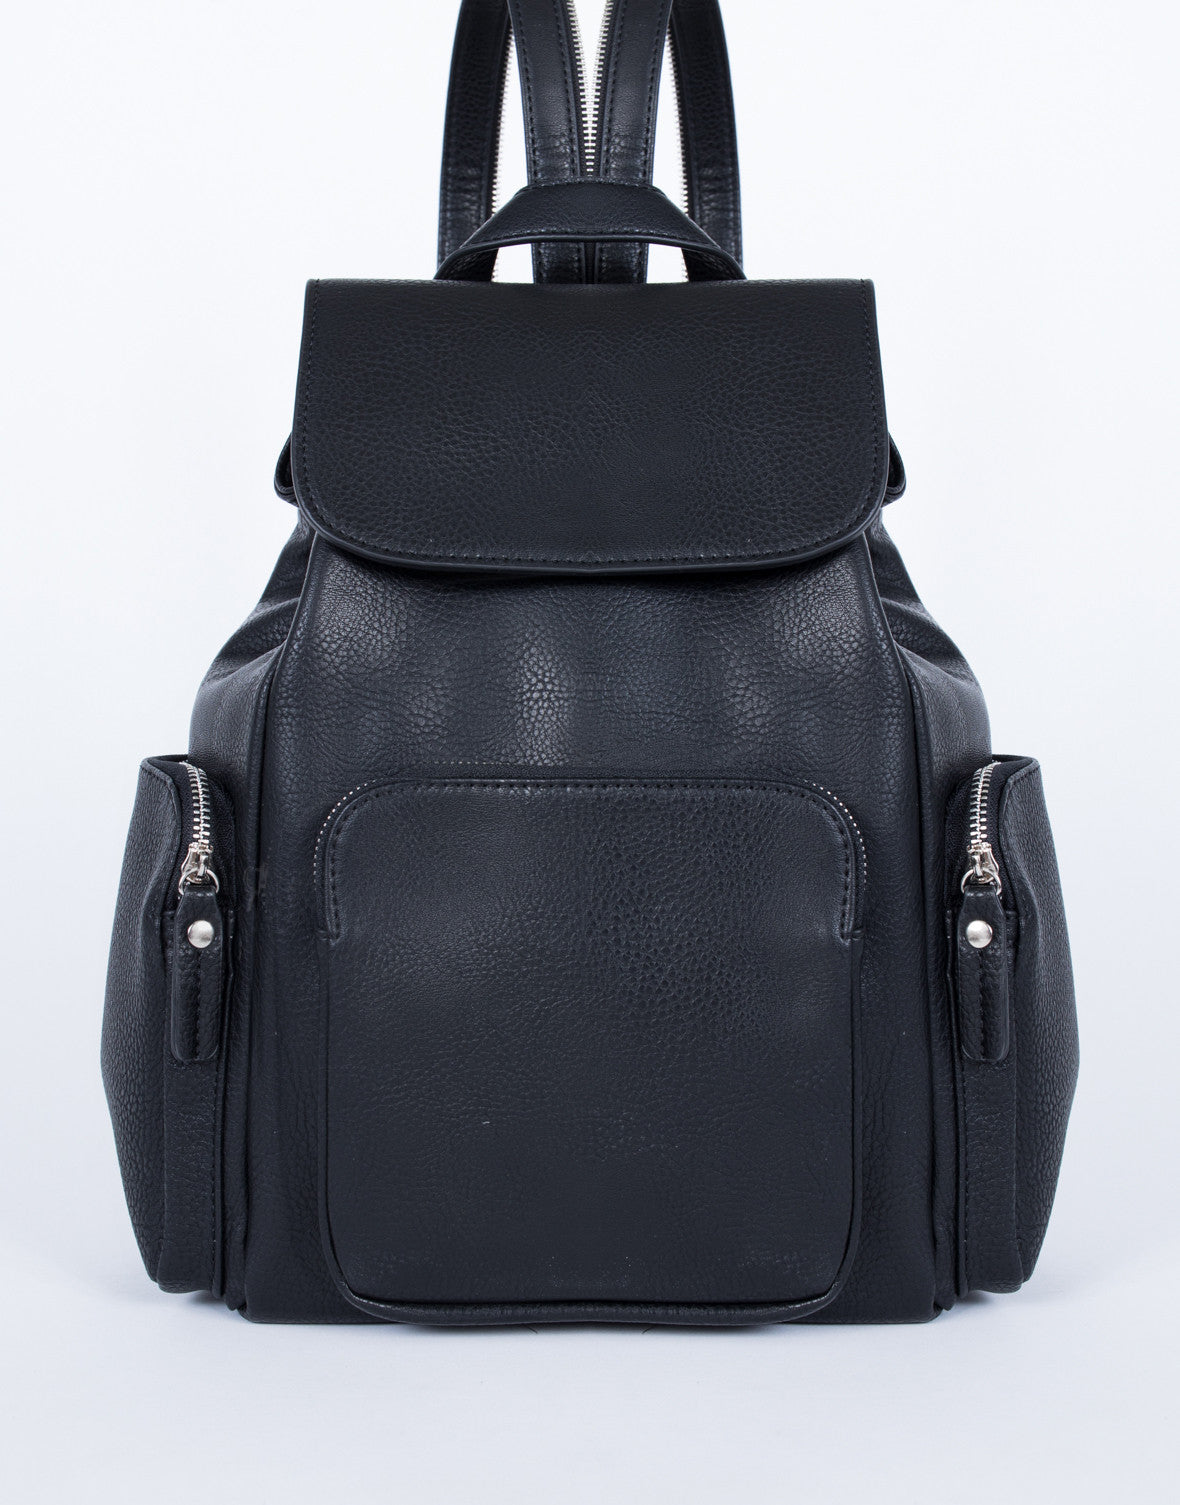 Split the Zip Backpack - 2020AVE